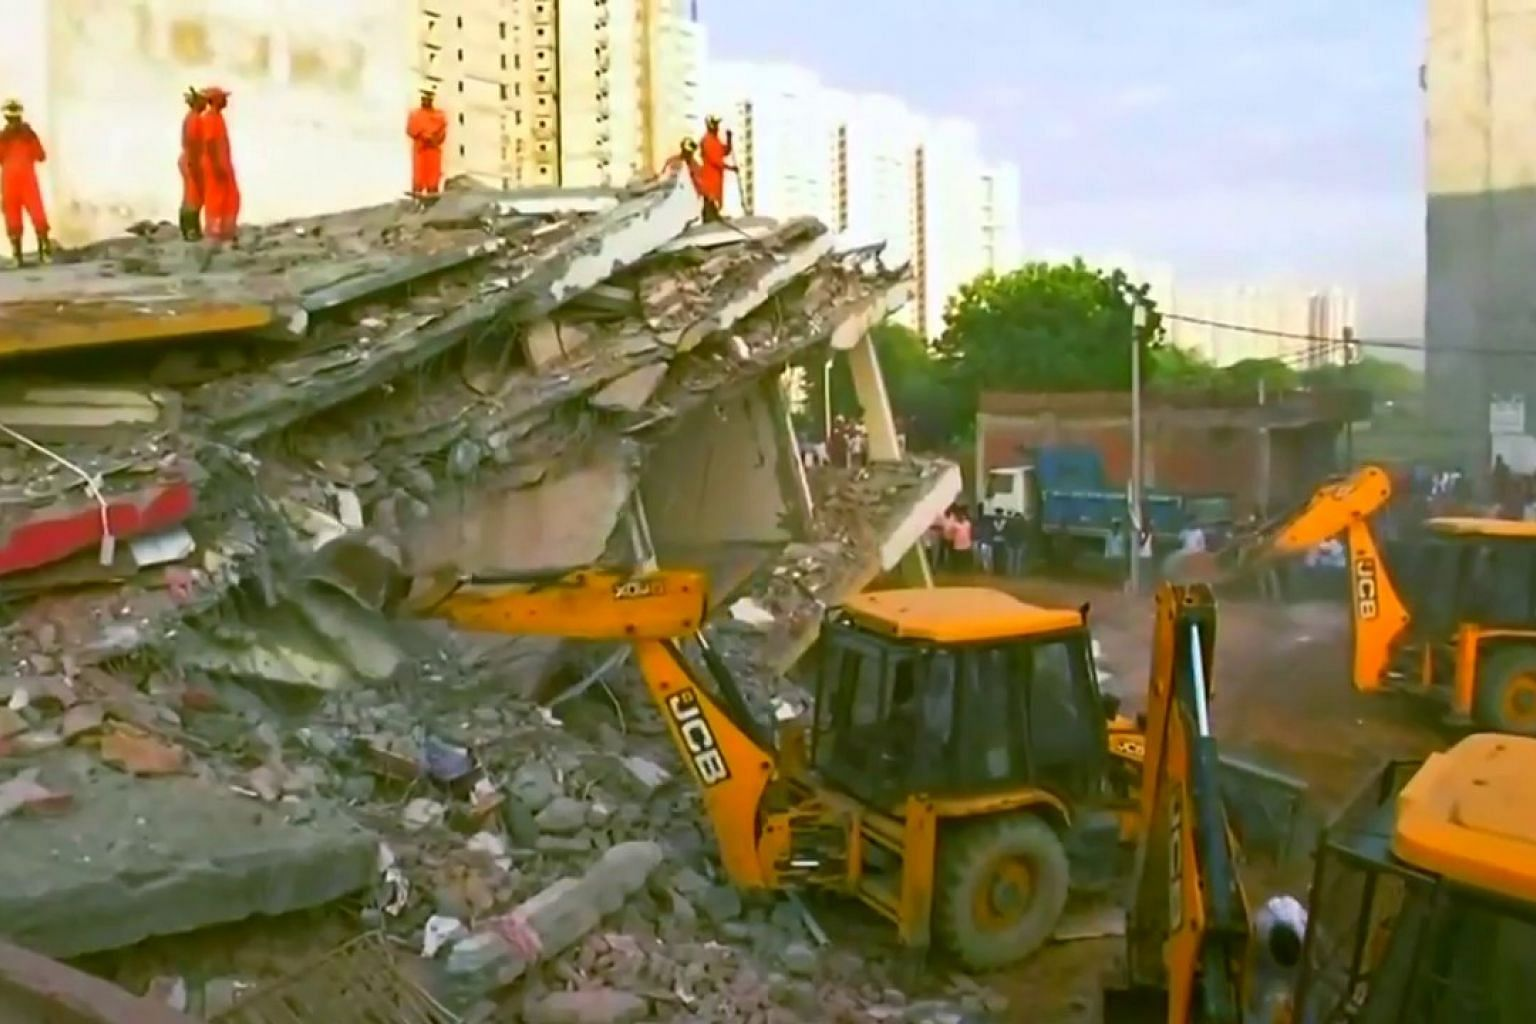 Rescuers scour rubble after apartment block collapses in India